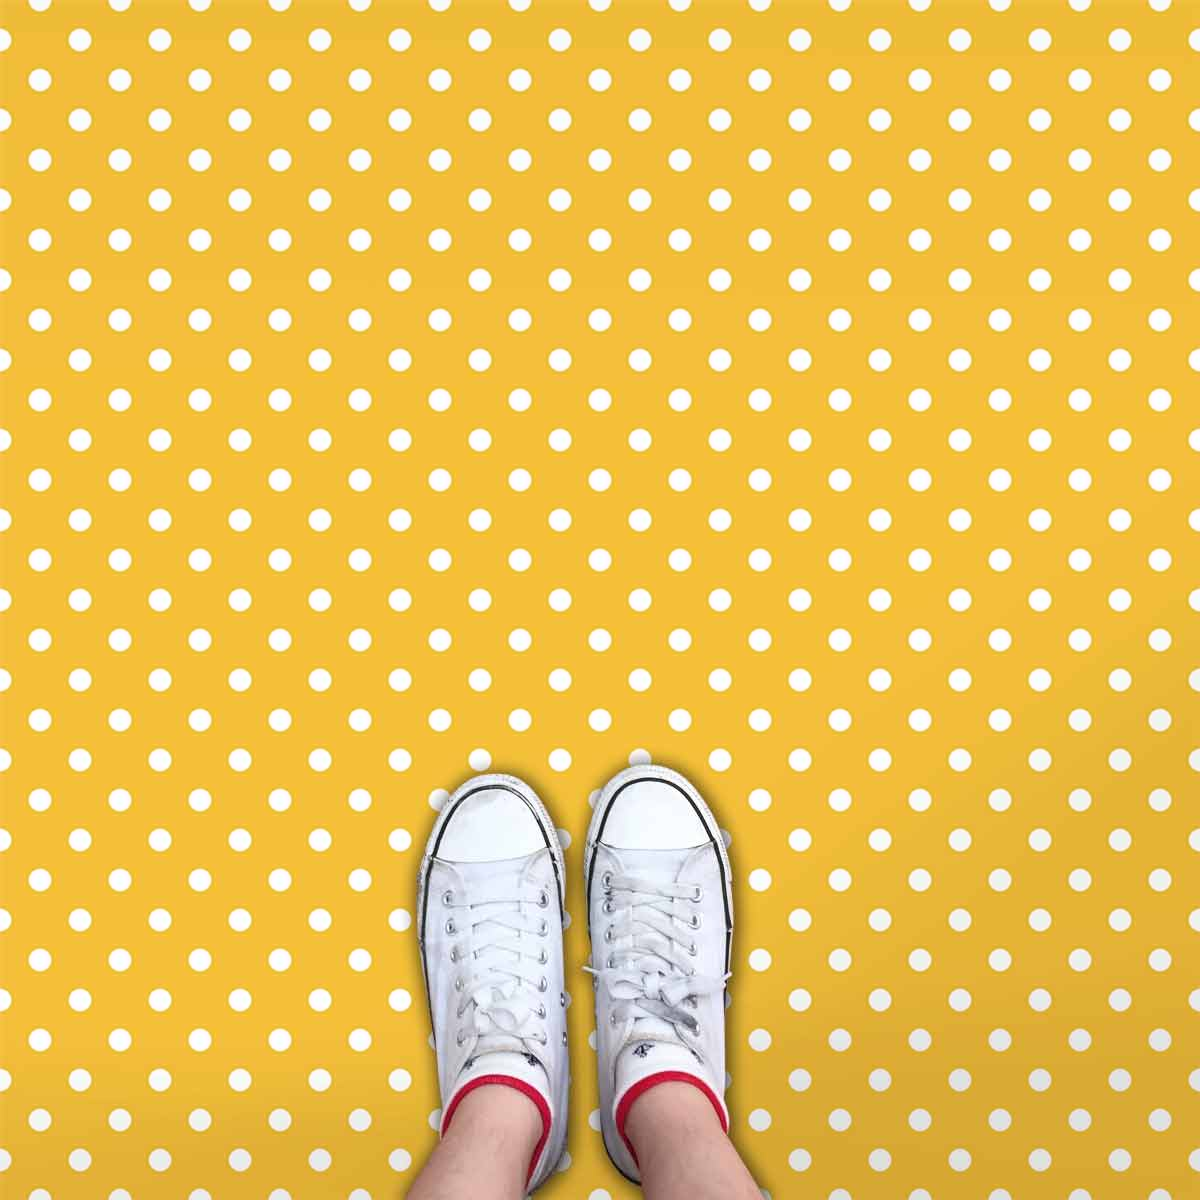 Image showing a yellow and white Polka Dot flooring used in a blog post about Polka Dot floor tiles from forthefloorandmore.com